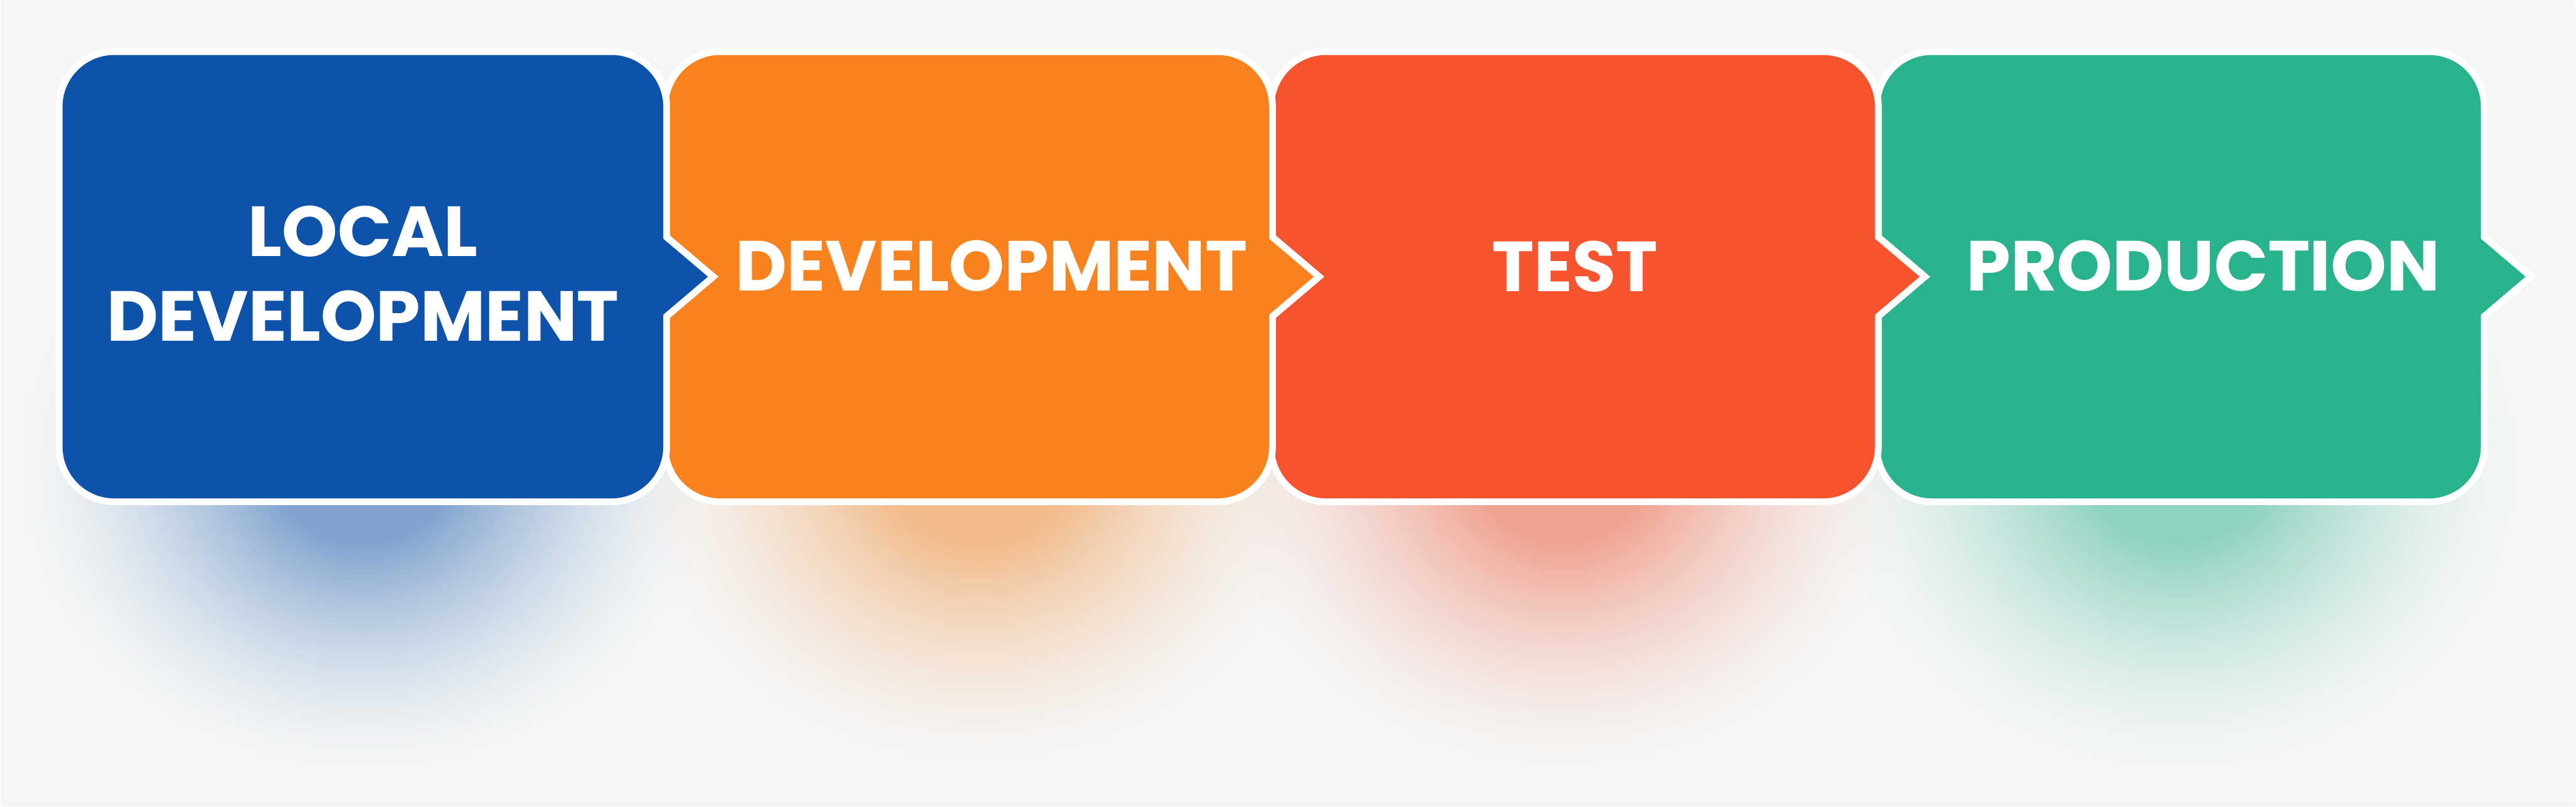 regression testing cycle